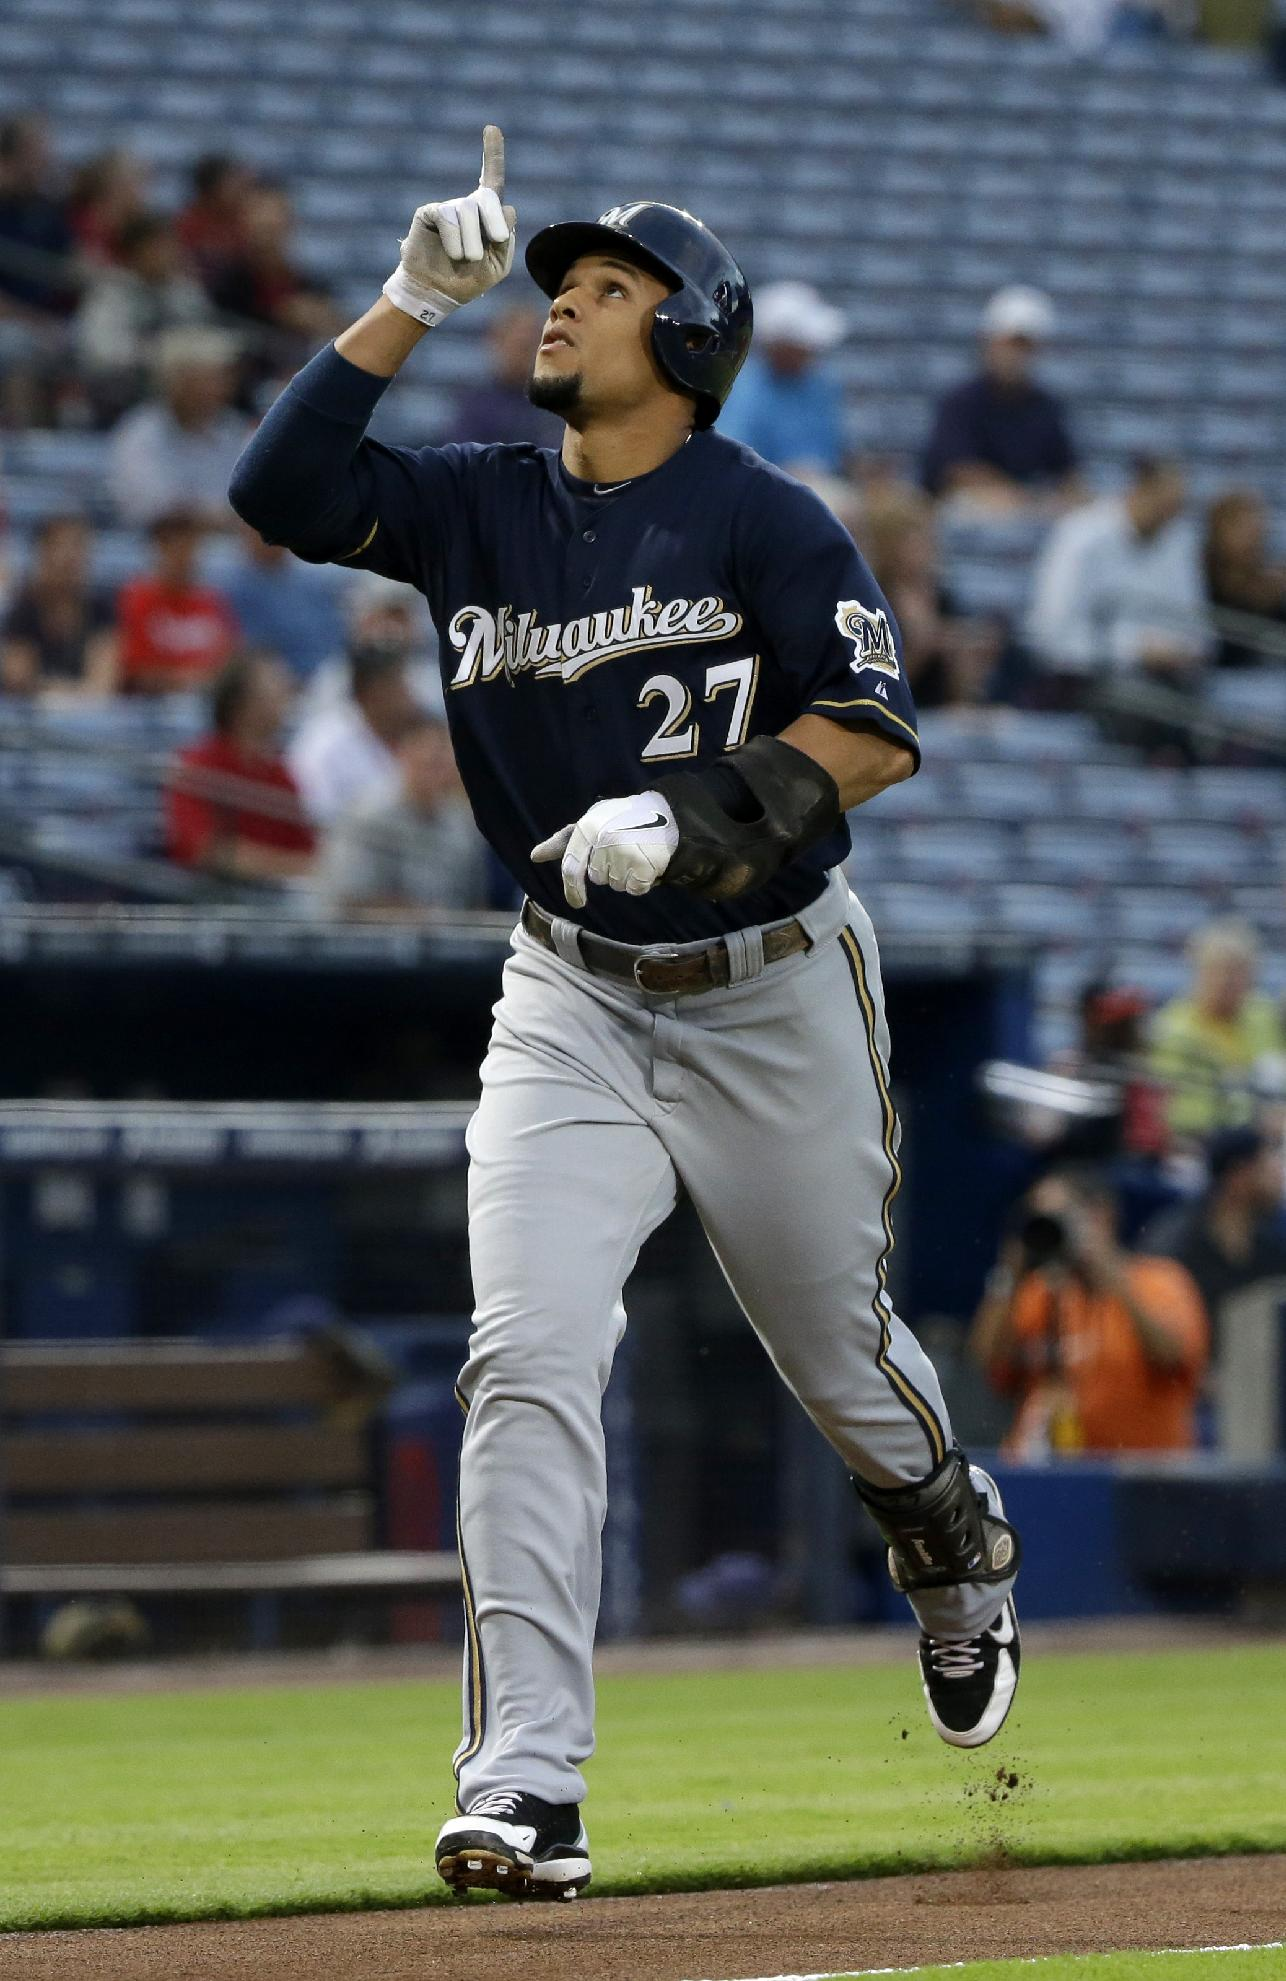 Milwaukee Brewers' Carlos Gomez points to the sky as he runs to home plate after hitting a home run in the first inning of a baseball game against the Atlanta Braves, Monday, Sept. 23, 2013, in Atlanta